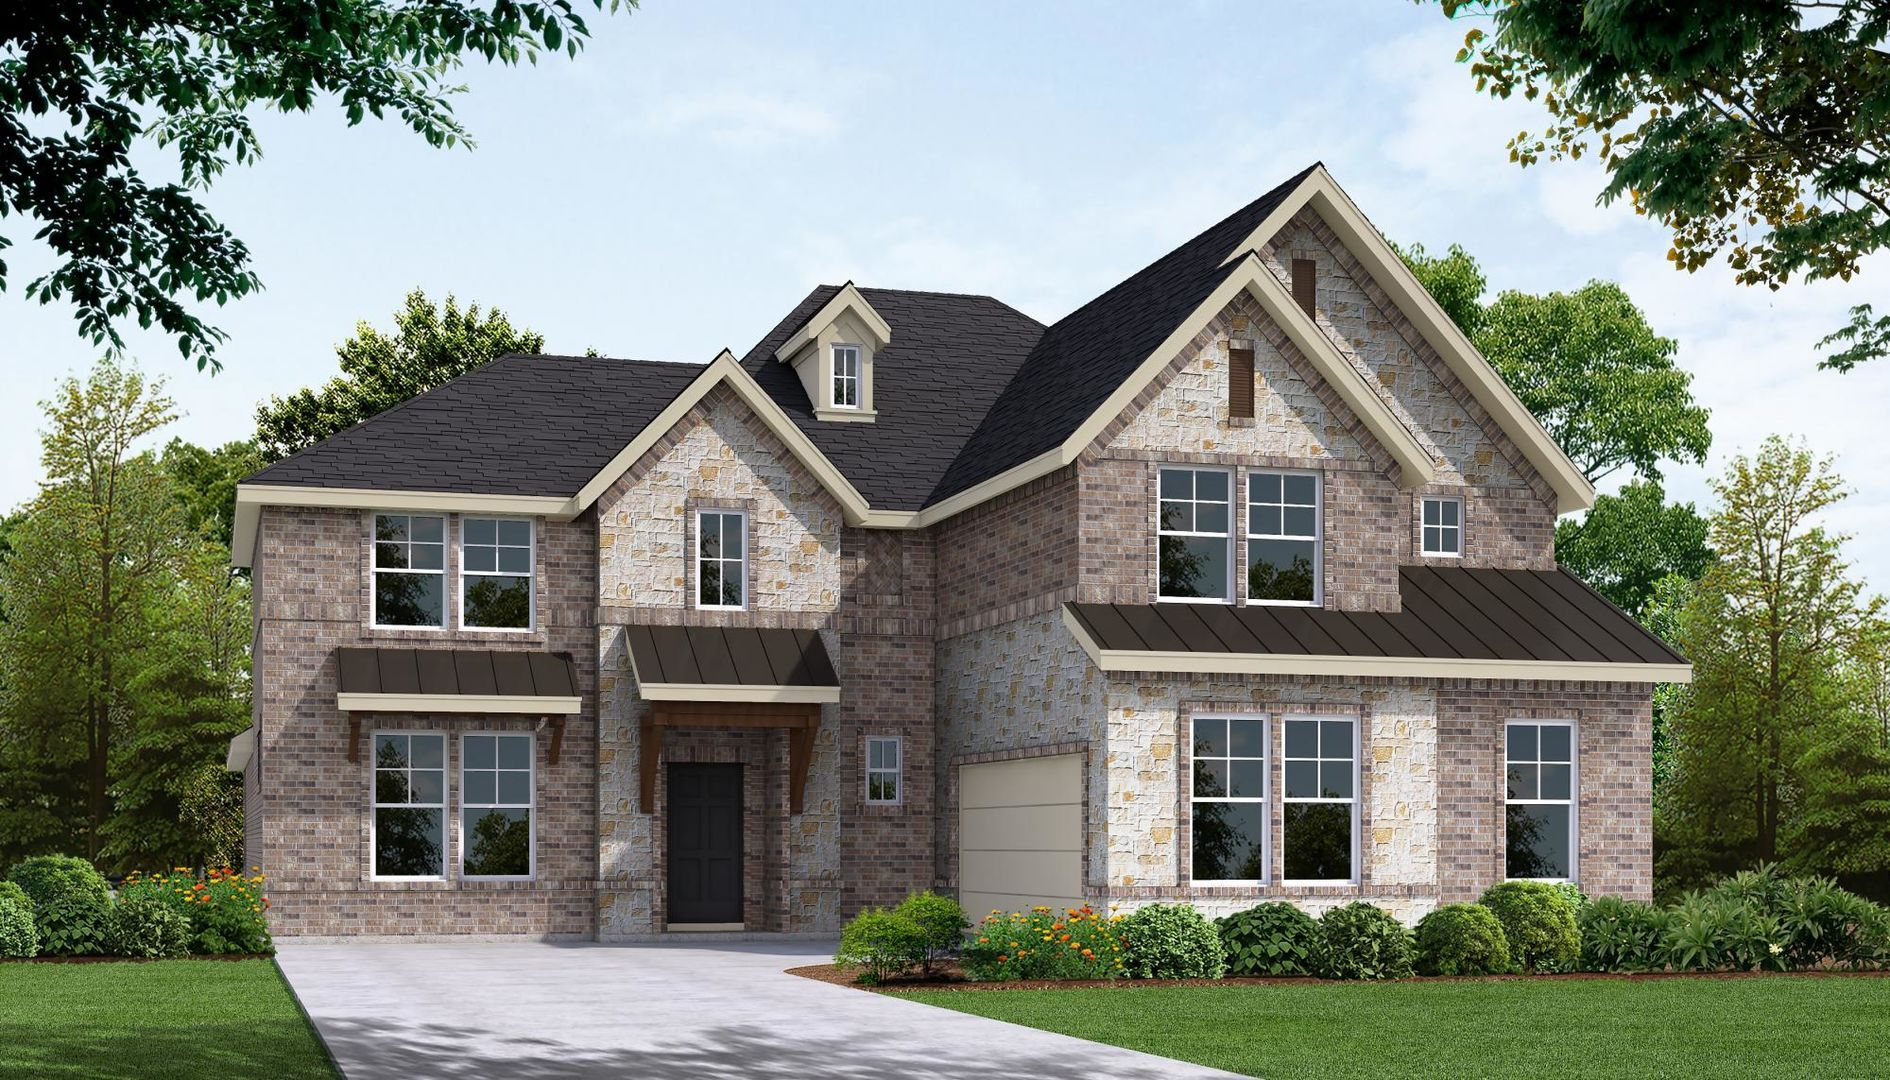 Single Family for Sale at 3870 956 Merion Burleson, Texas 76028 United States